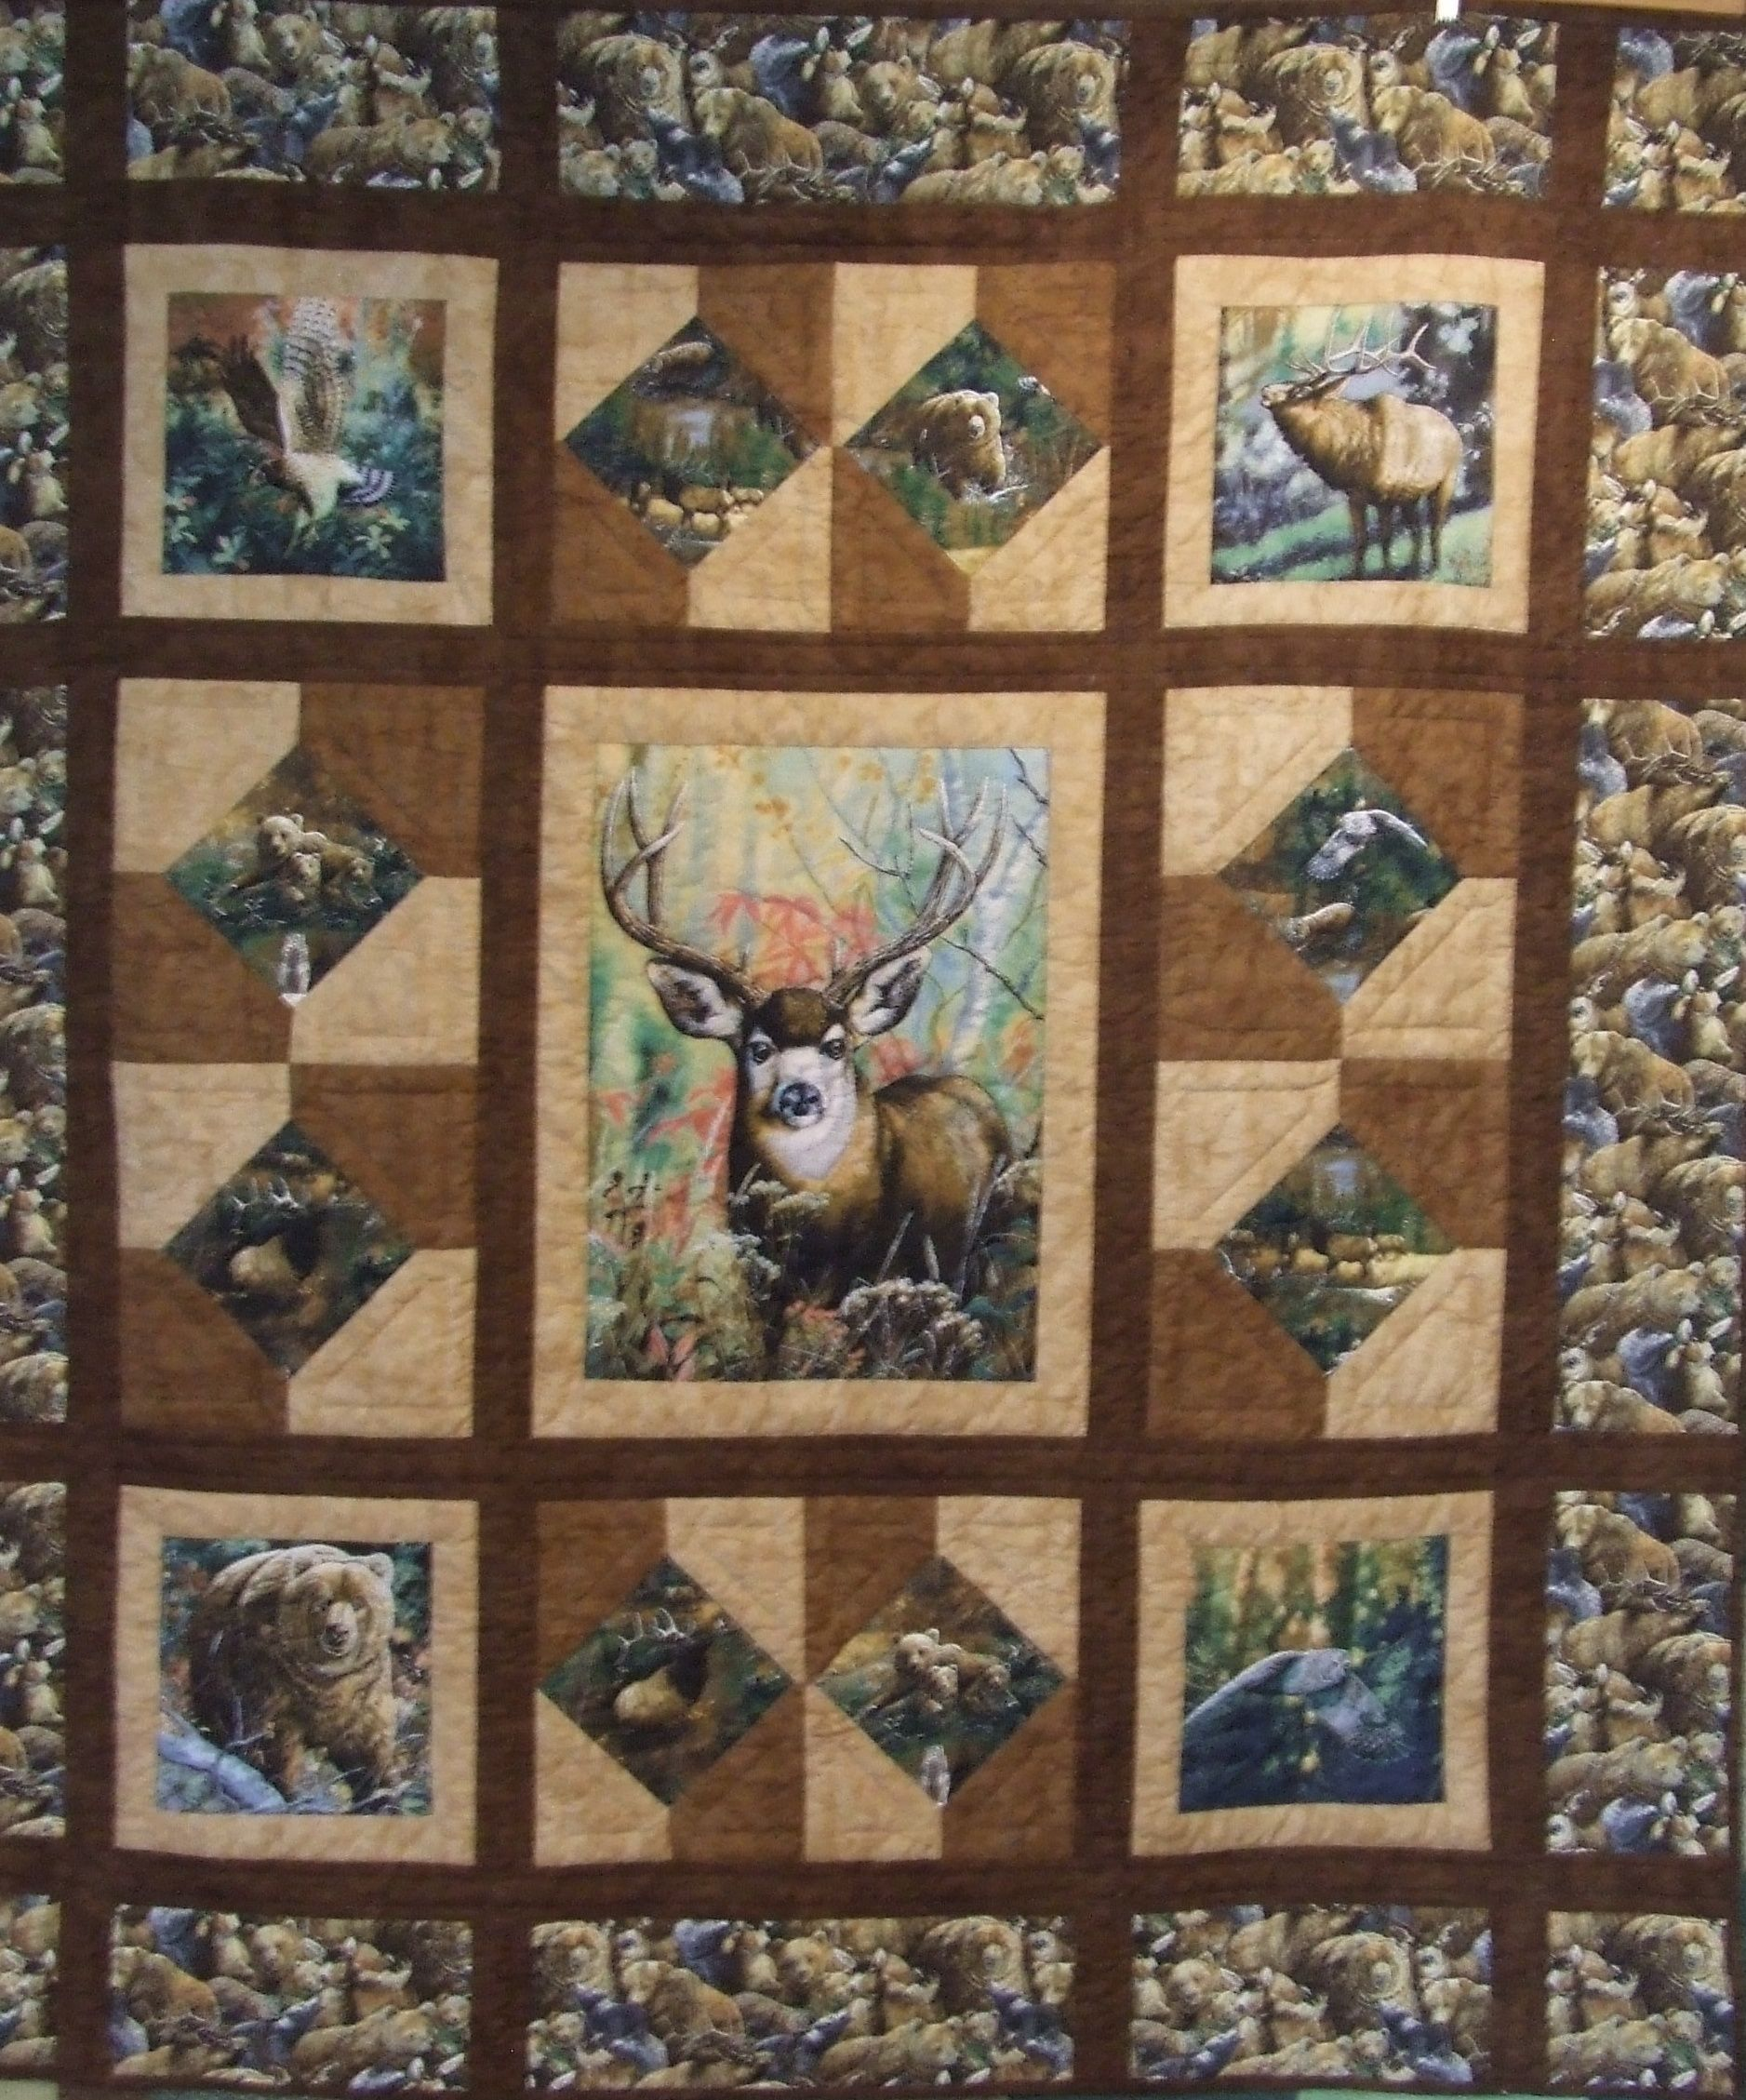 panel quilts - Google Search Quilt To Do List Pinterest Panel quilts, Google search and Google